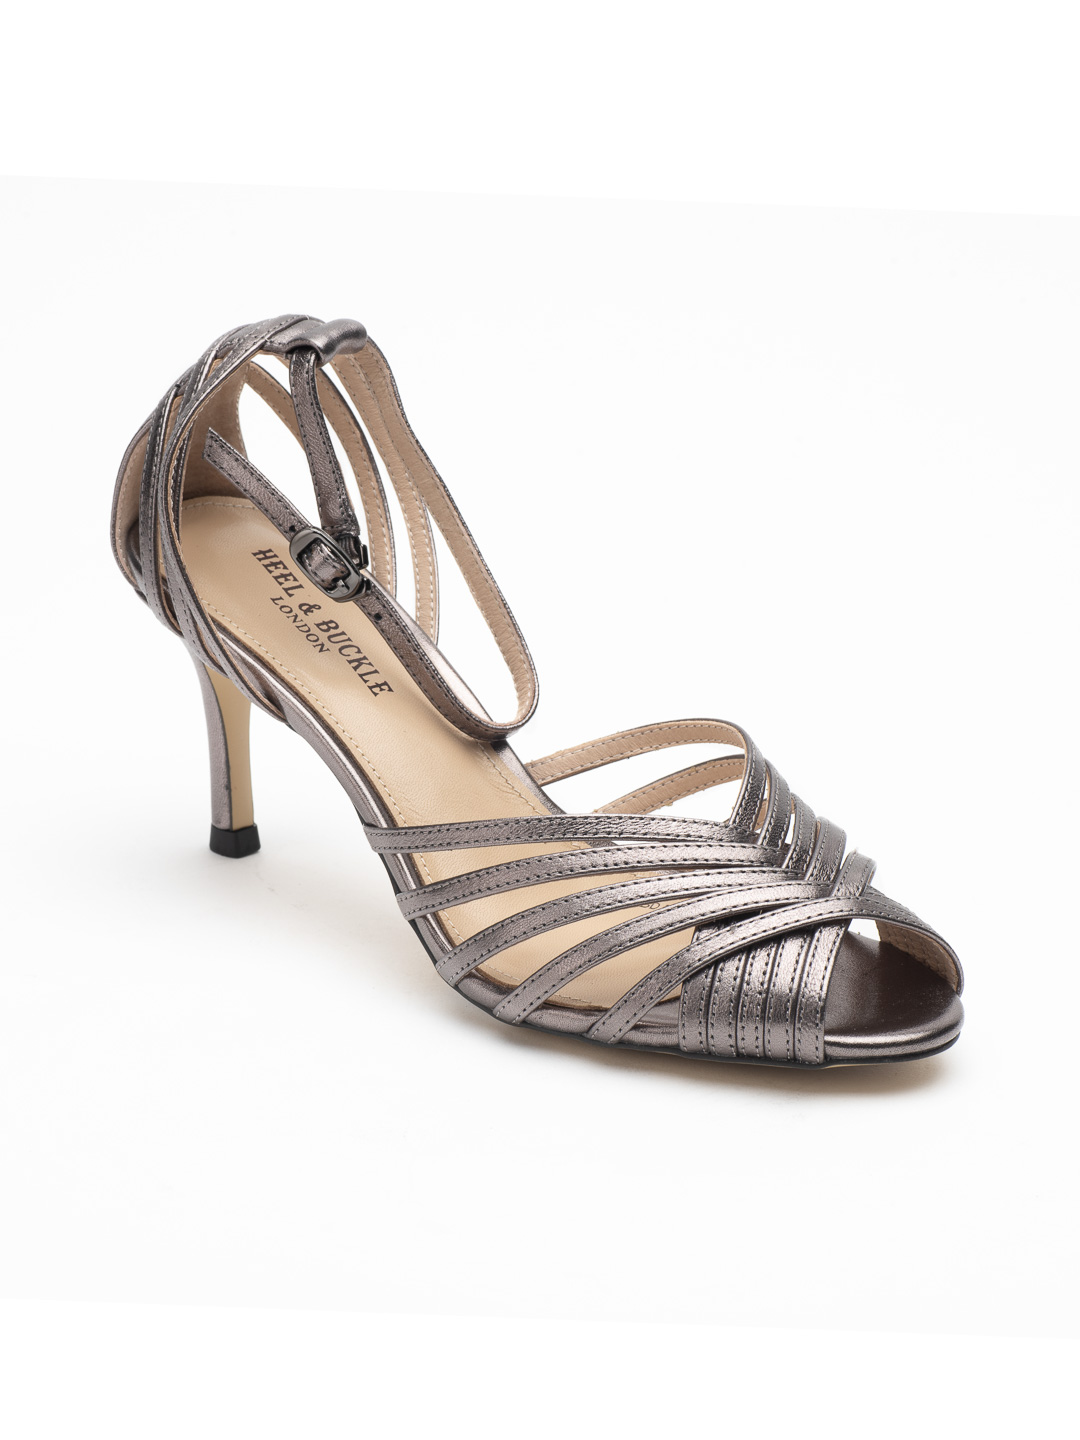 Heel & Buckle London-Shoes-HBDARW088-Metallic Gold Ankle Strap Sandals-Metallic grey-2